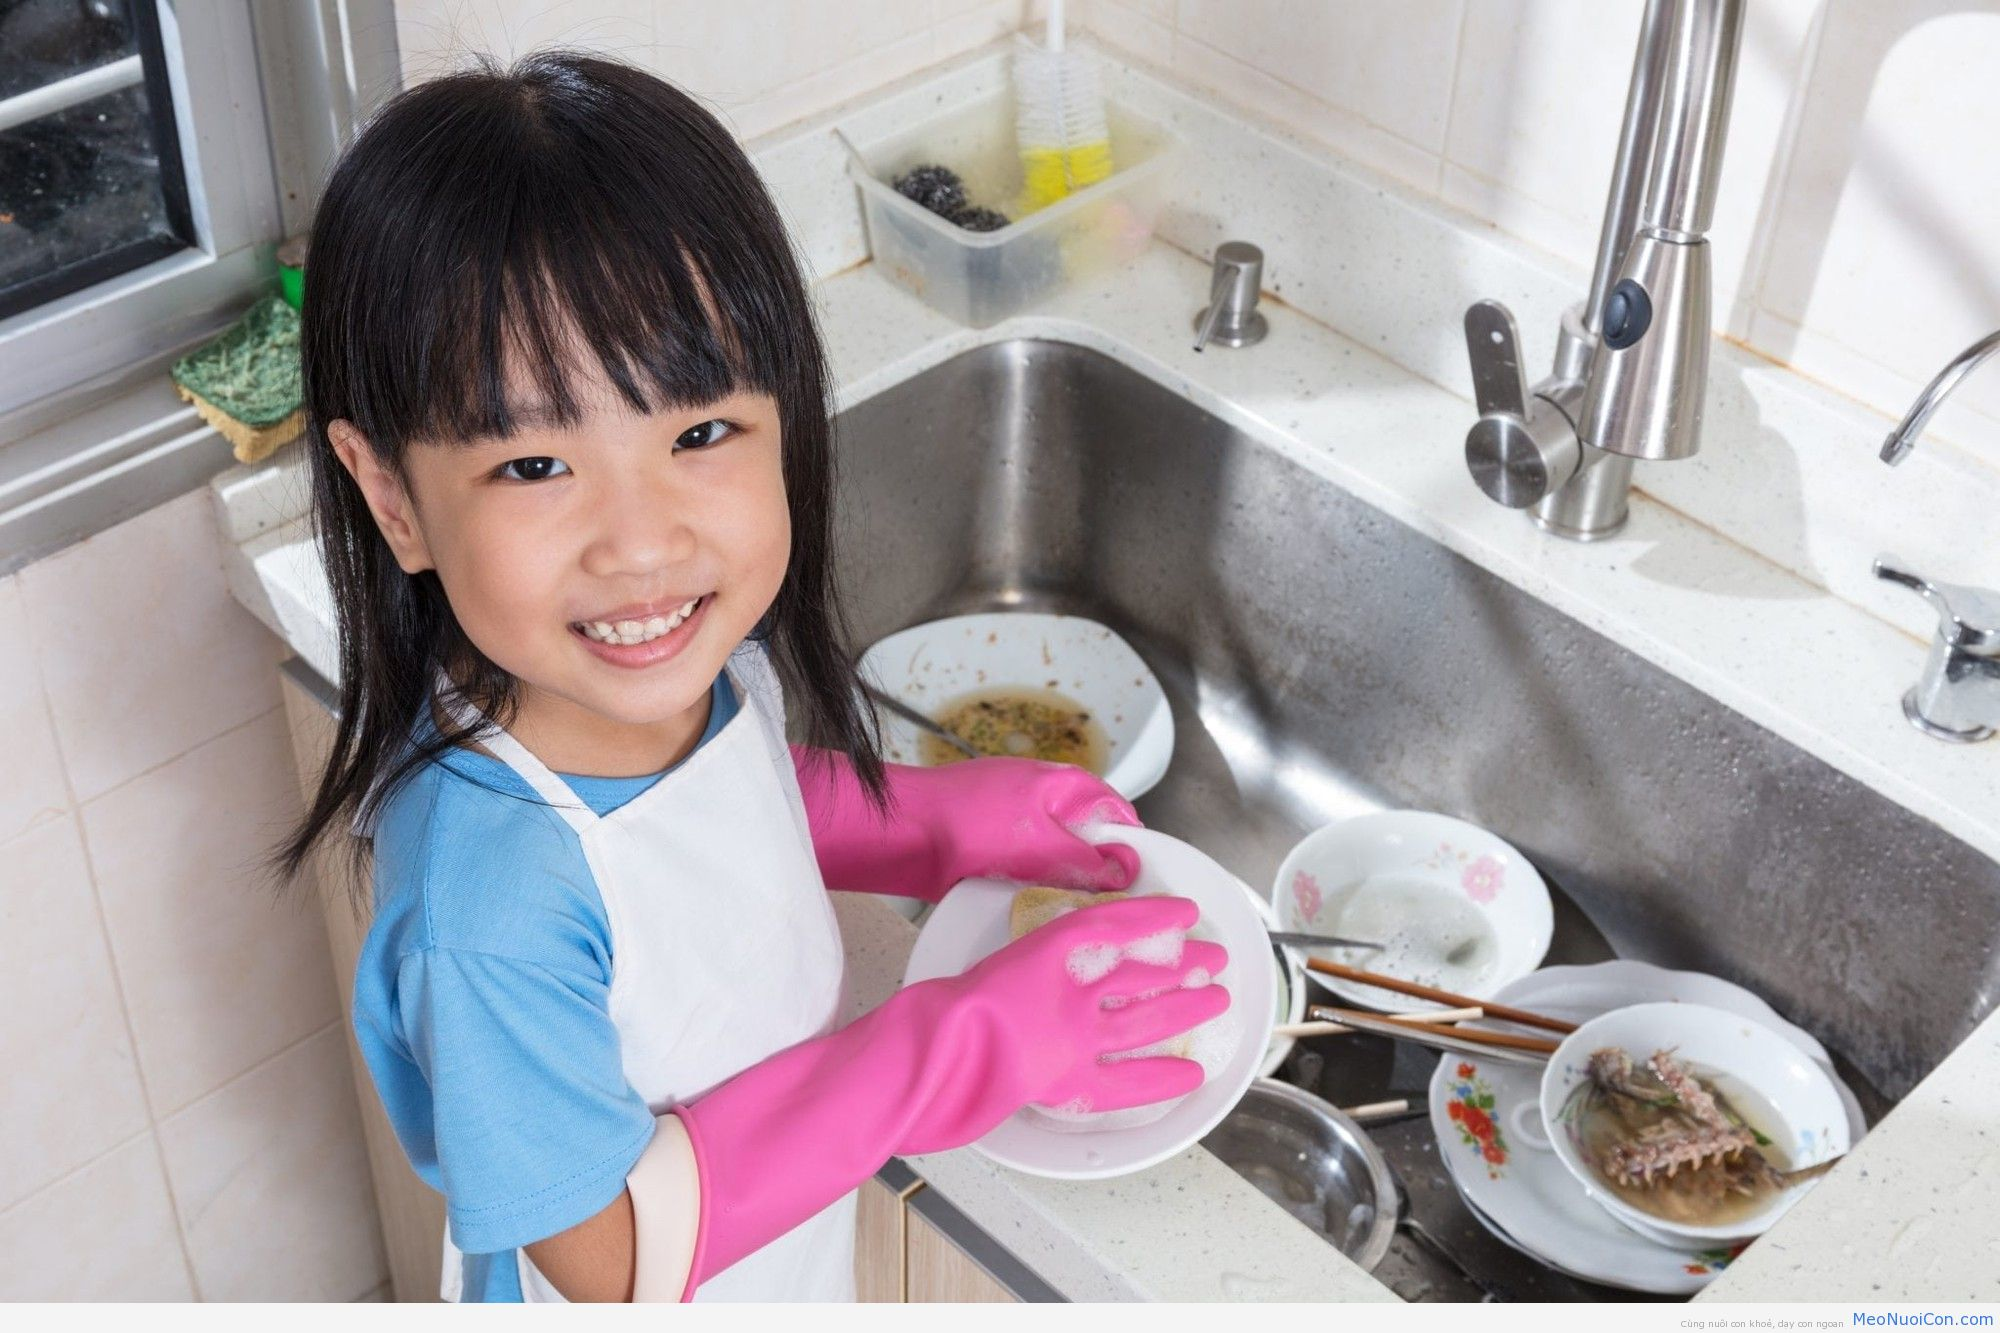 Asian-Chinese-little-girl-washing-dishes-in-the-kitchen-669163576_3868x2579-copy-1